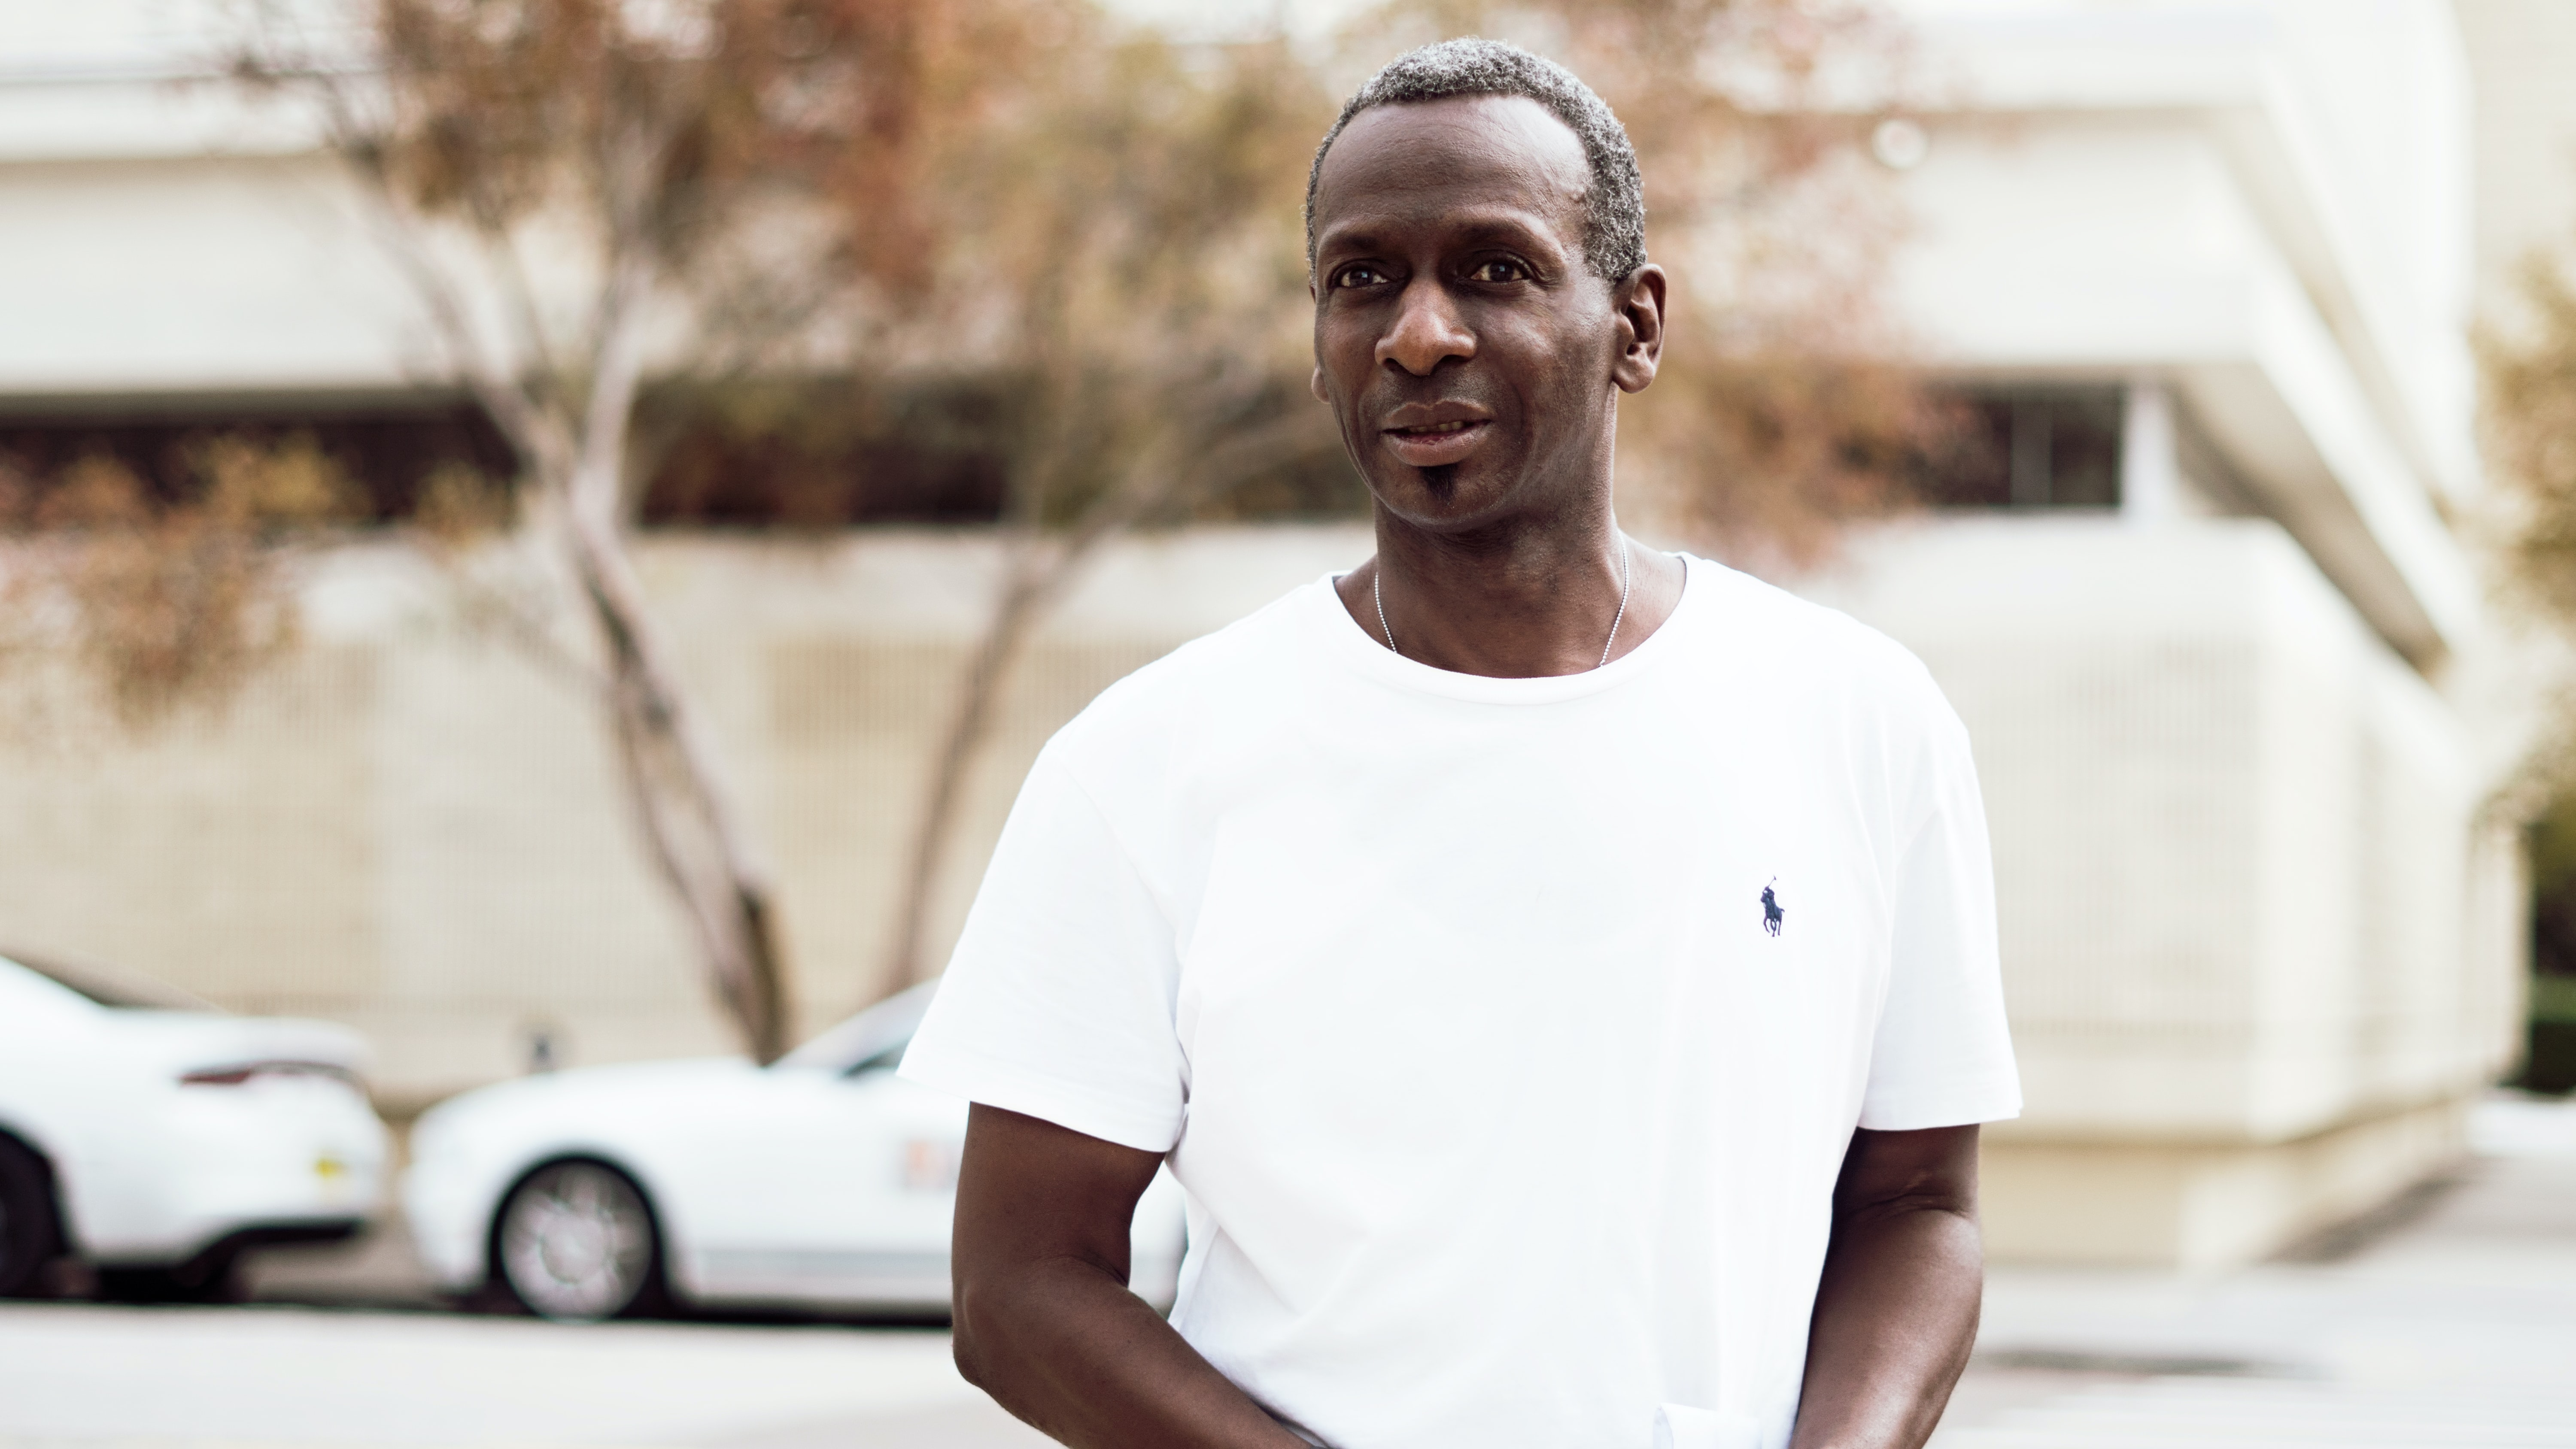 A man wearing white t-shirt standing on the street